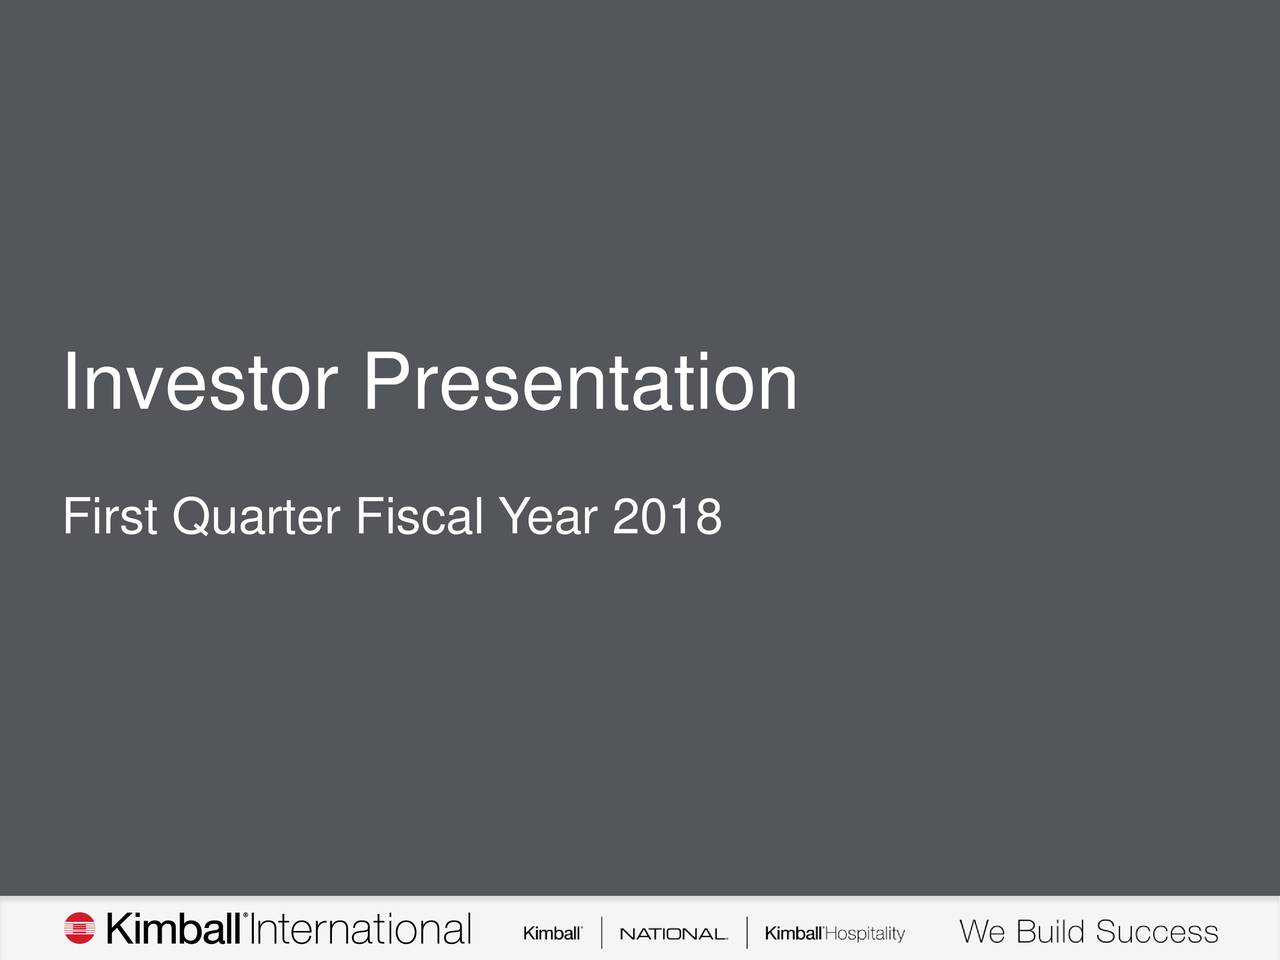 First Quarter Fiscal Year 2018